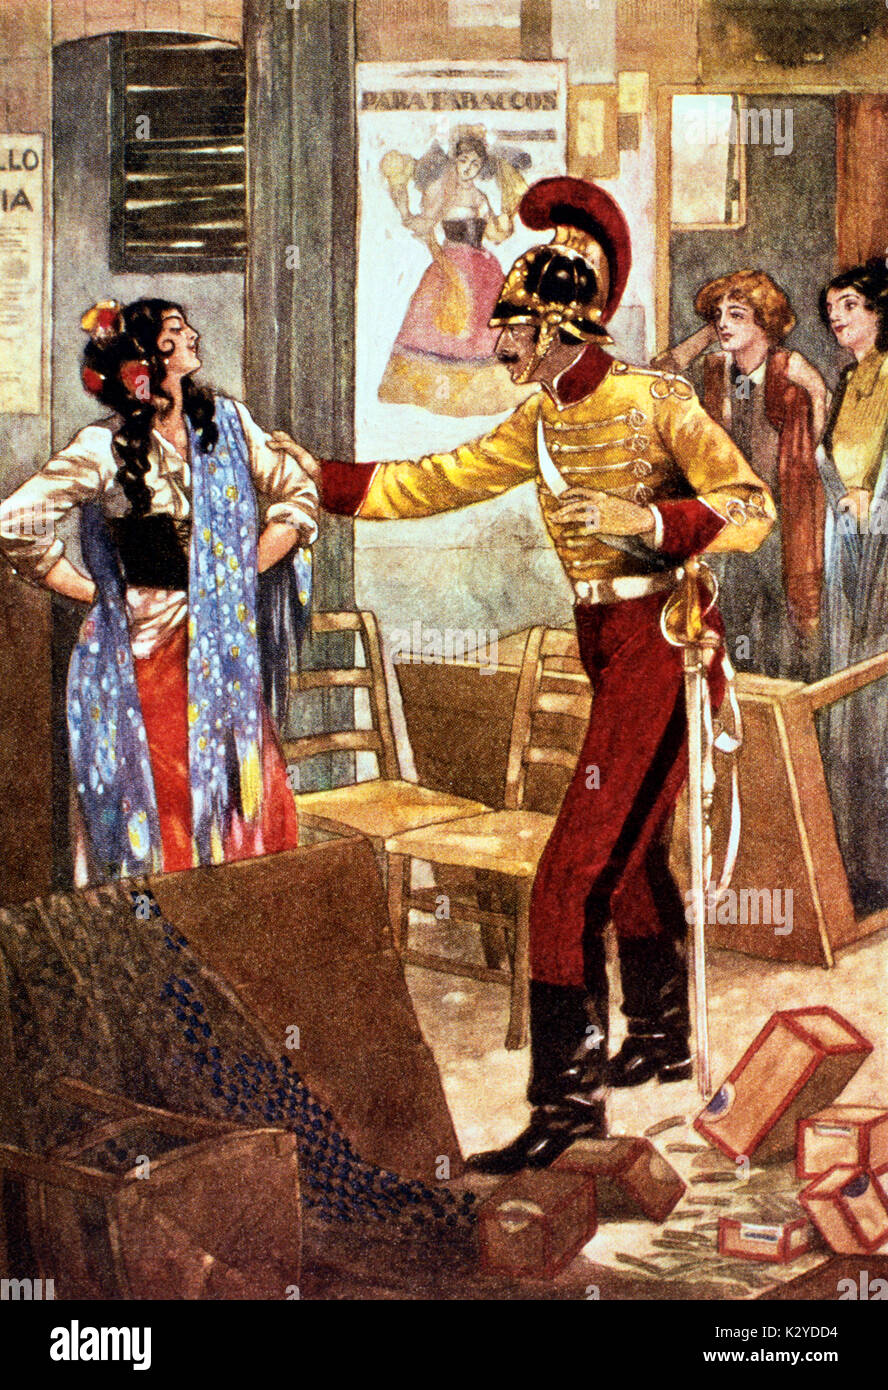 carmen composed by georges bizet essay The music of carmen the opera by georges bizet musically, carmen is prefaced by a short orchestral introduction, very free in form and not elaborate enough to be.